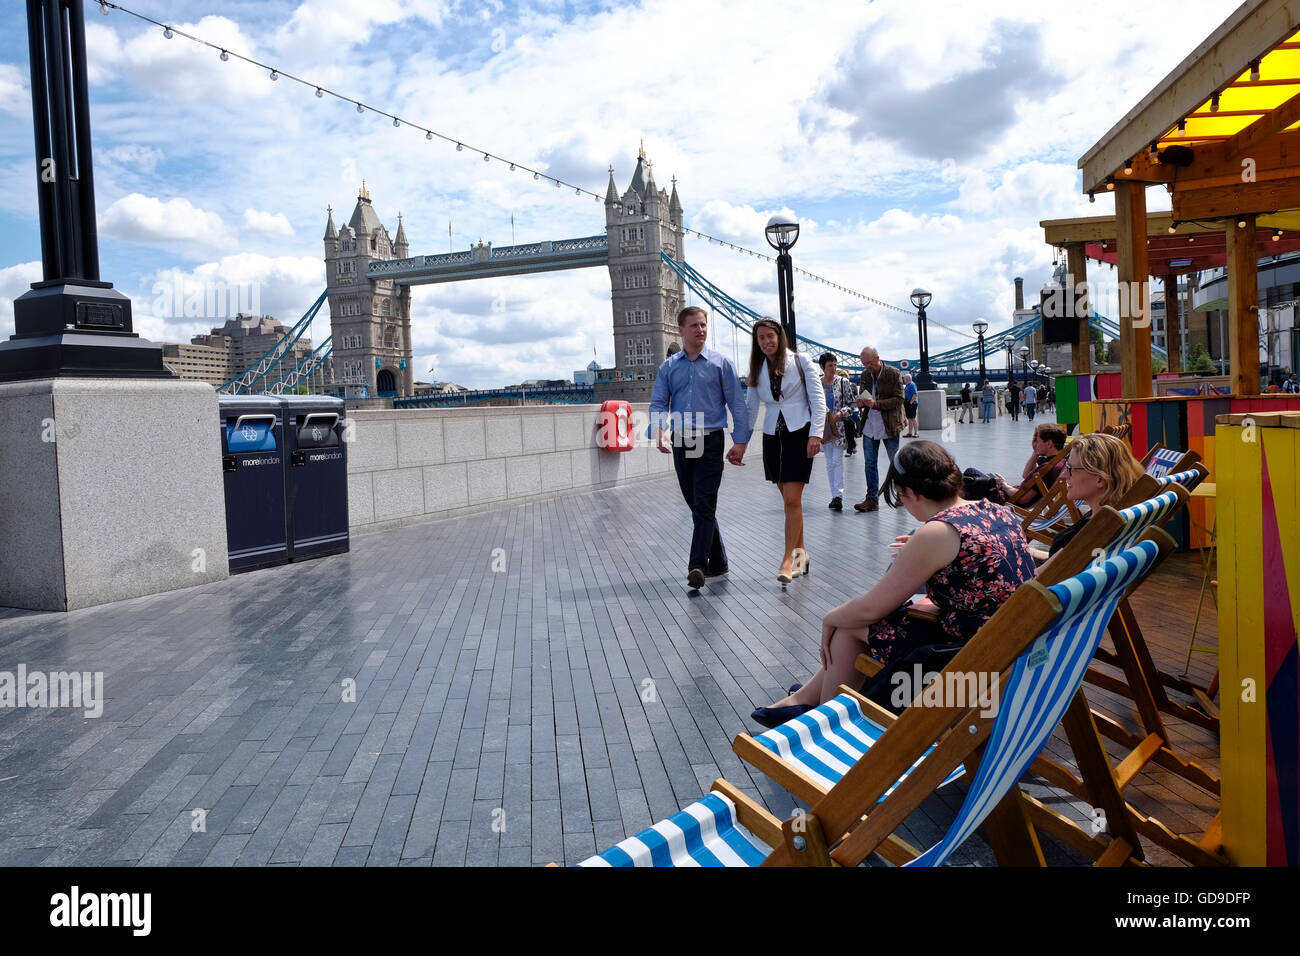 London, United Kingdom. Tourists sit and relax in deck chairs on the walkway on the south bank of the Thames Tower - Stock Image